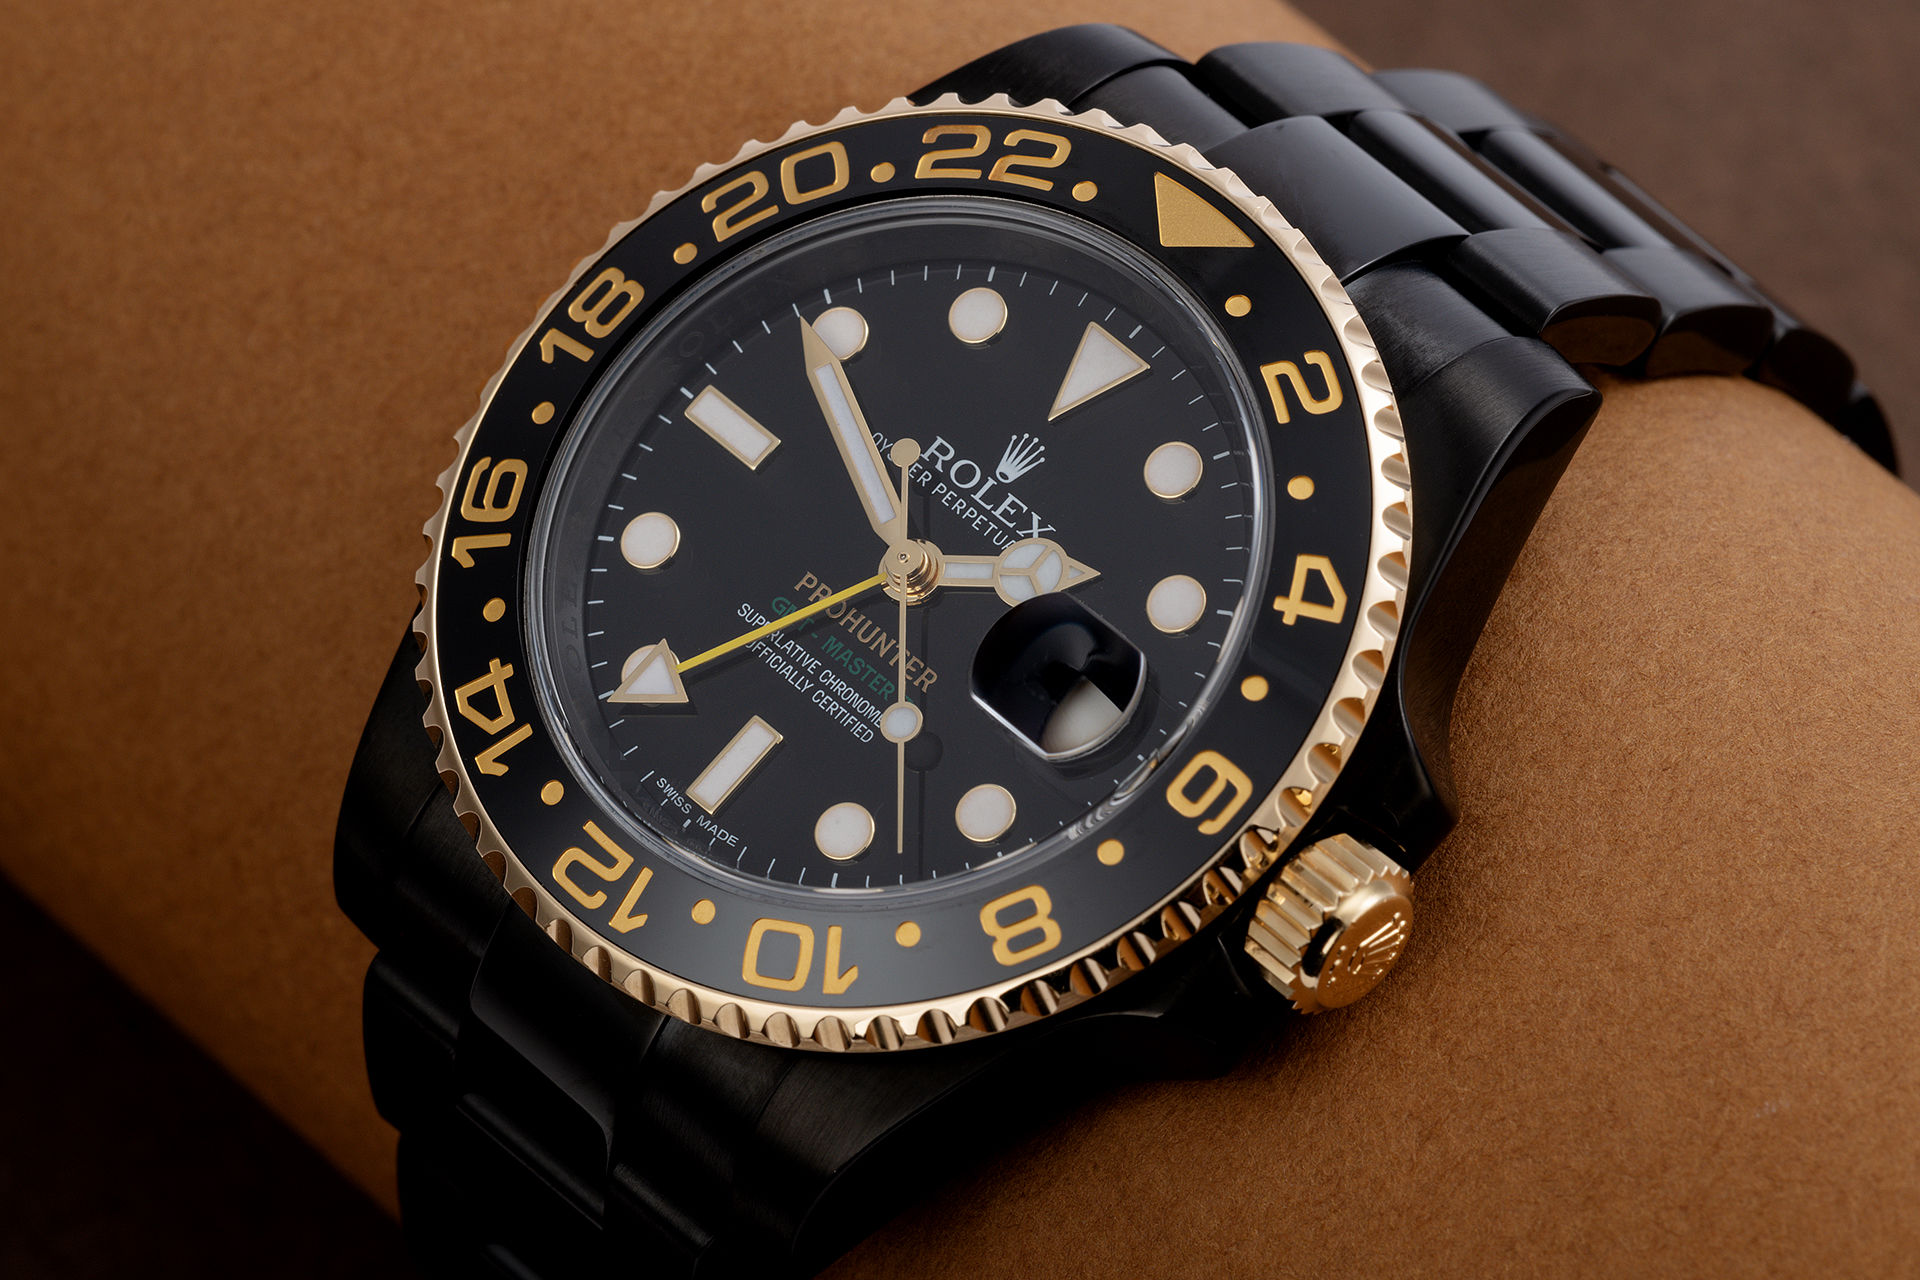 ref 116713LN | Safari Model 'One of 100' | Pro Hunter GMT-Master II